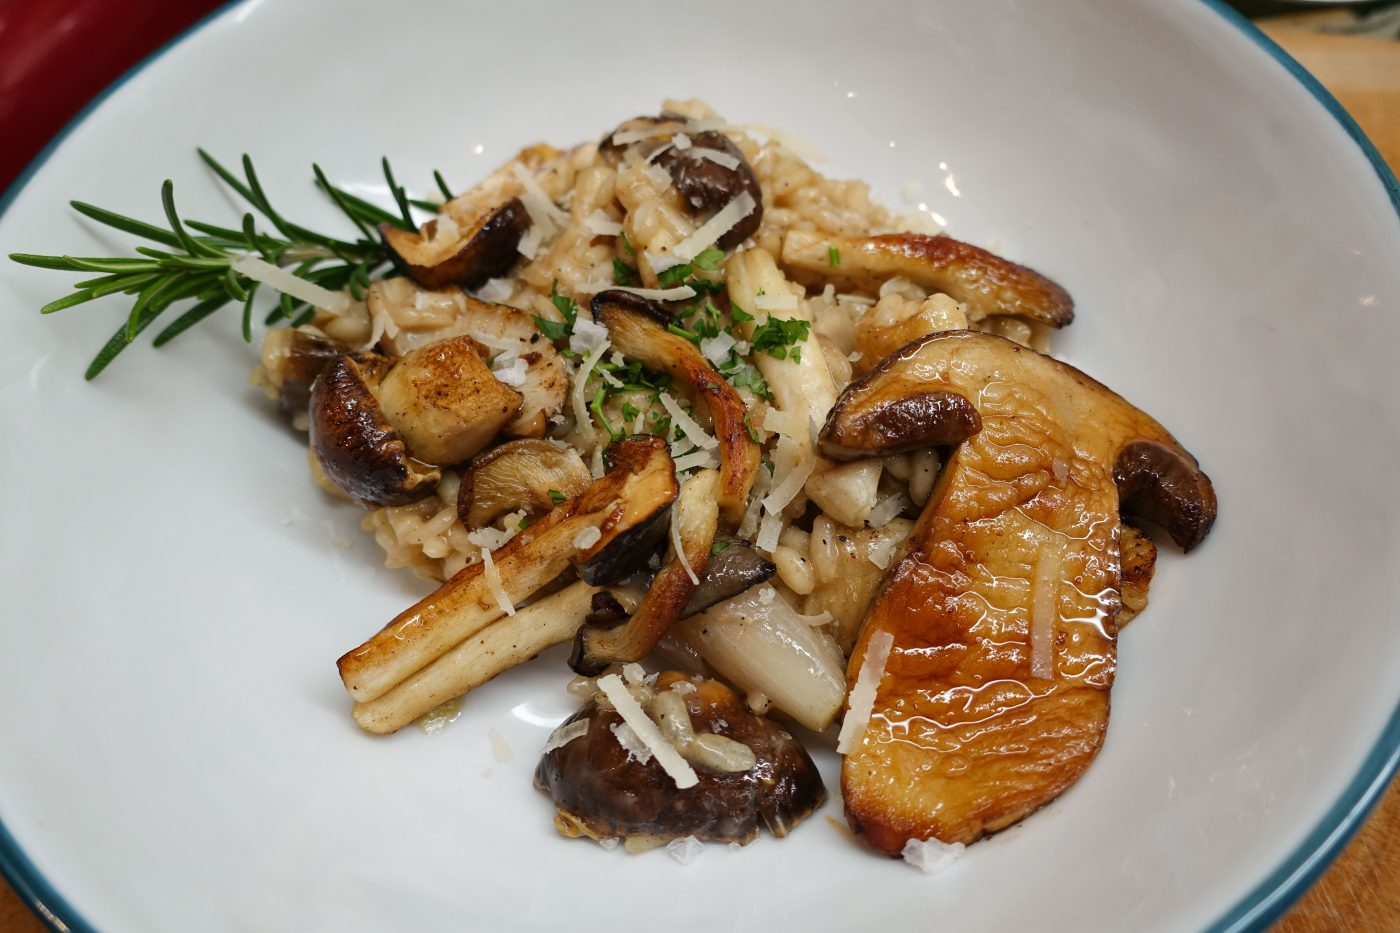 Mushroom risotto, simple, vegetarian, delicious